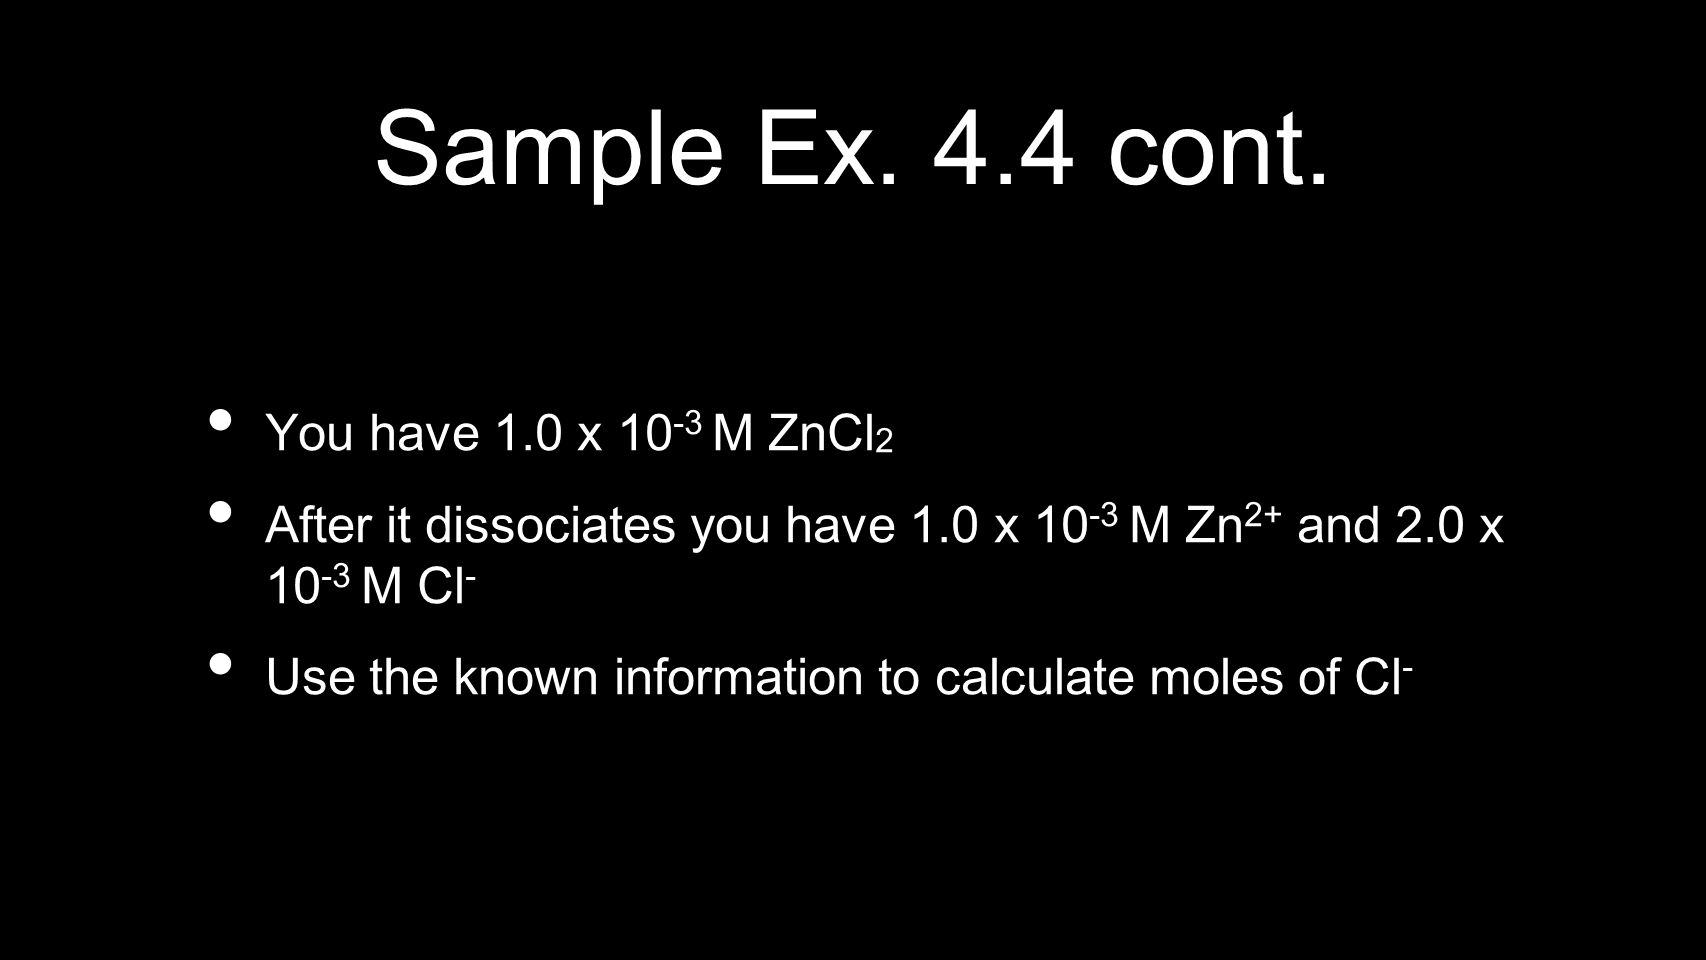 Sample Ex. 4.4 cont. You have 1.0 x 10-3 M ZnCl2